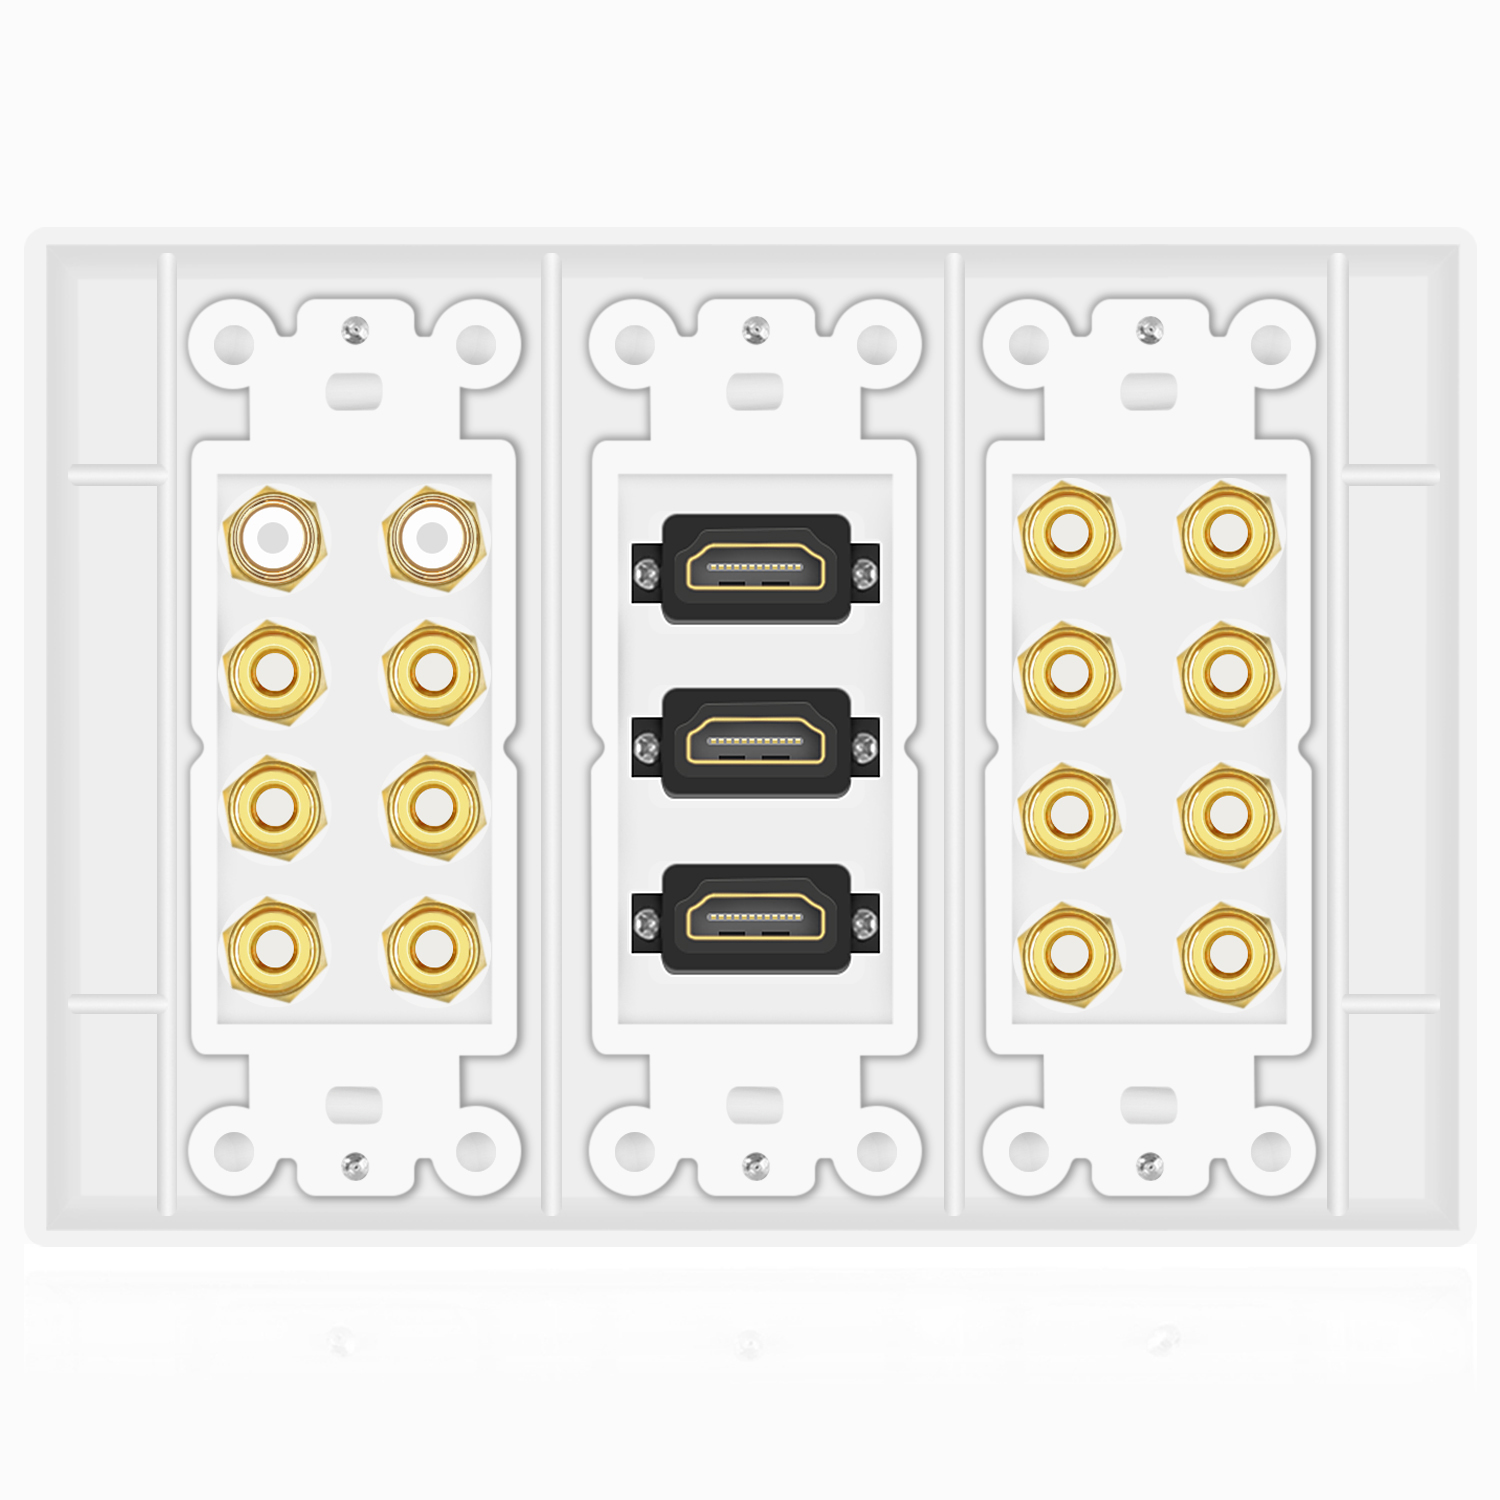 Home Theater Wall Plates 7.1 7.2 home theater speaker wall plate + 2 rca jacks + 3 hdmi